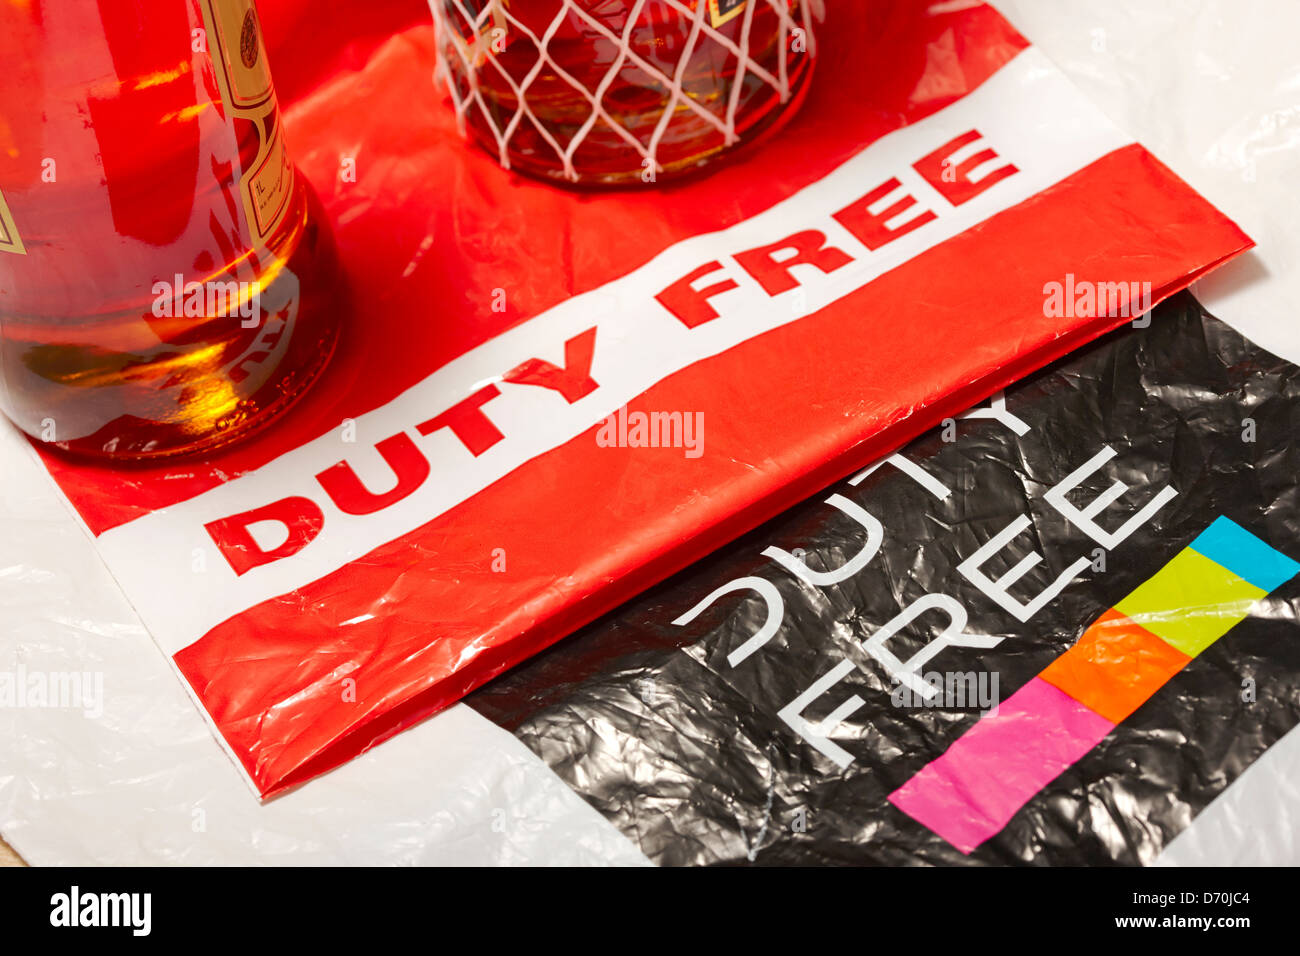 duty free bags with bottles of spirits - Stock Image